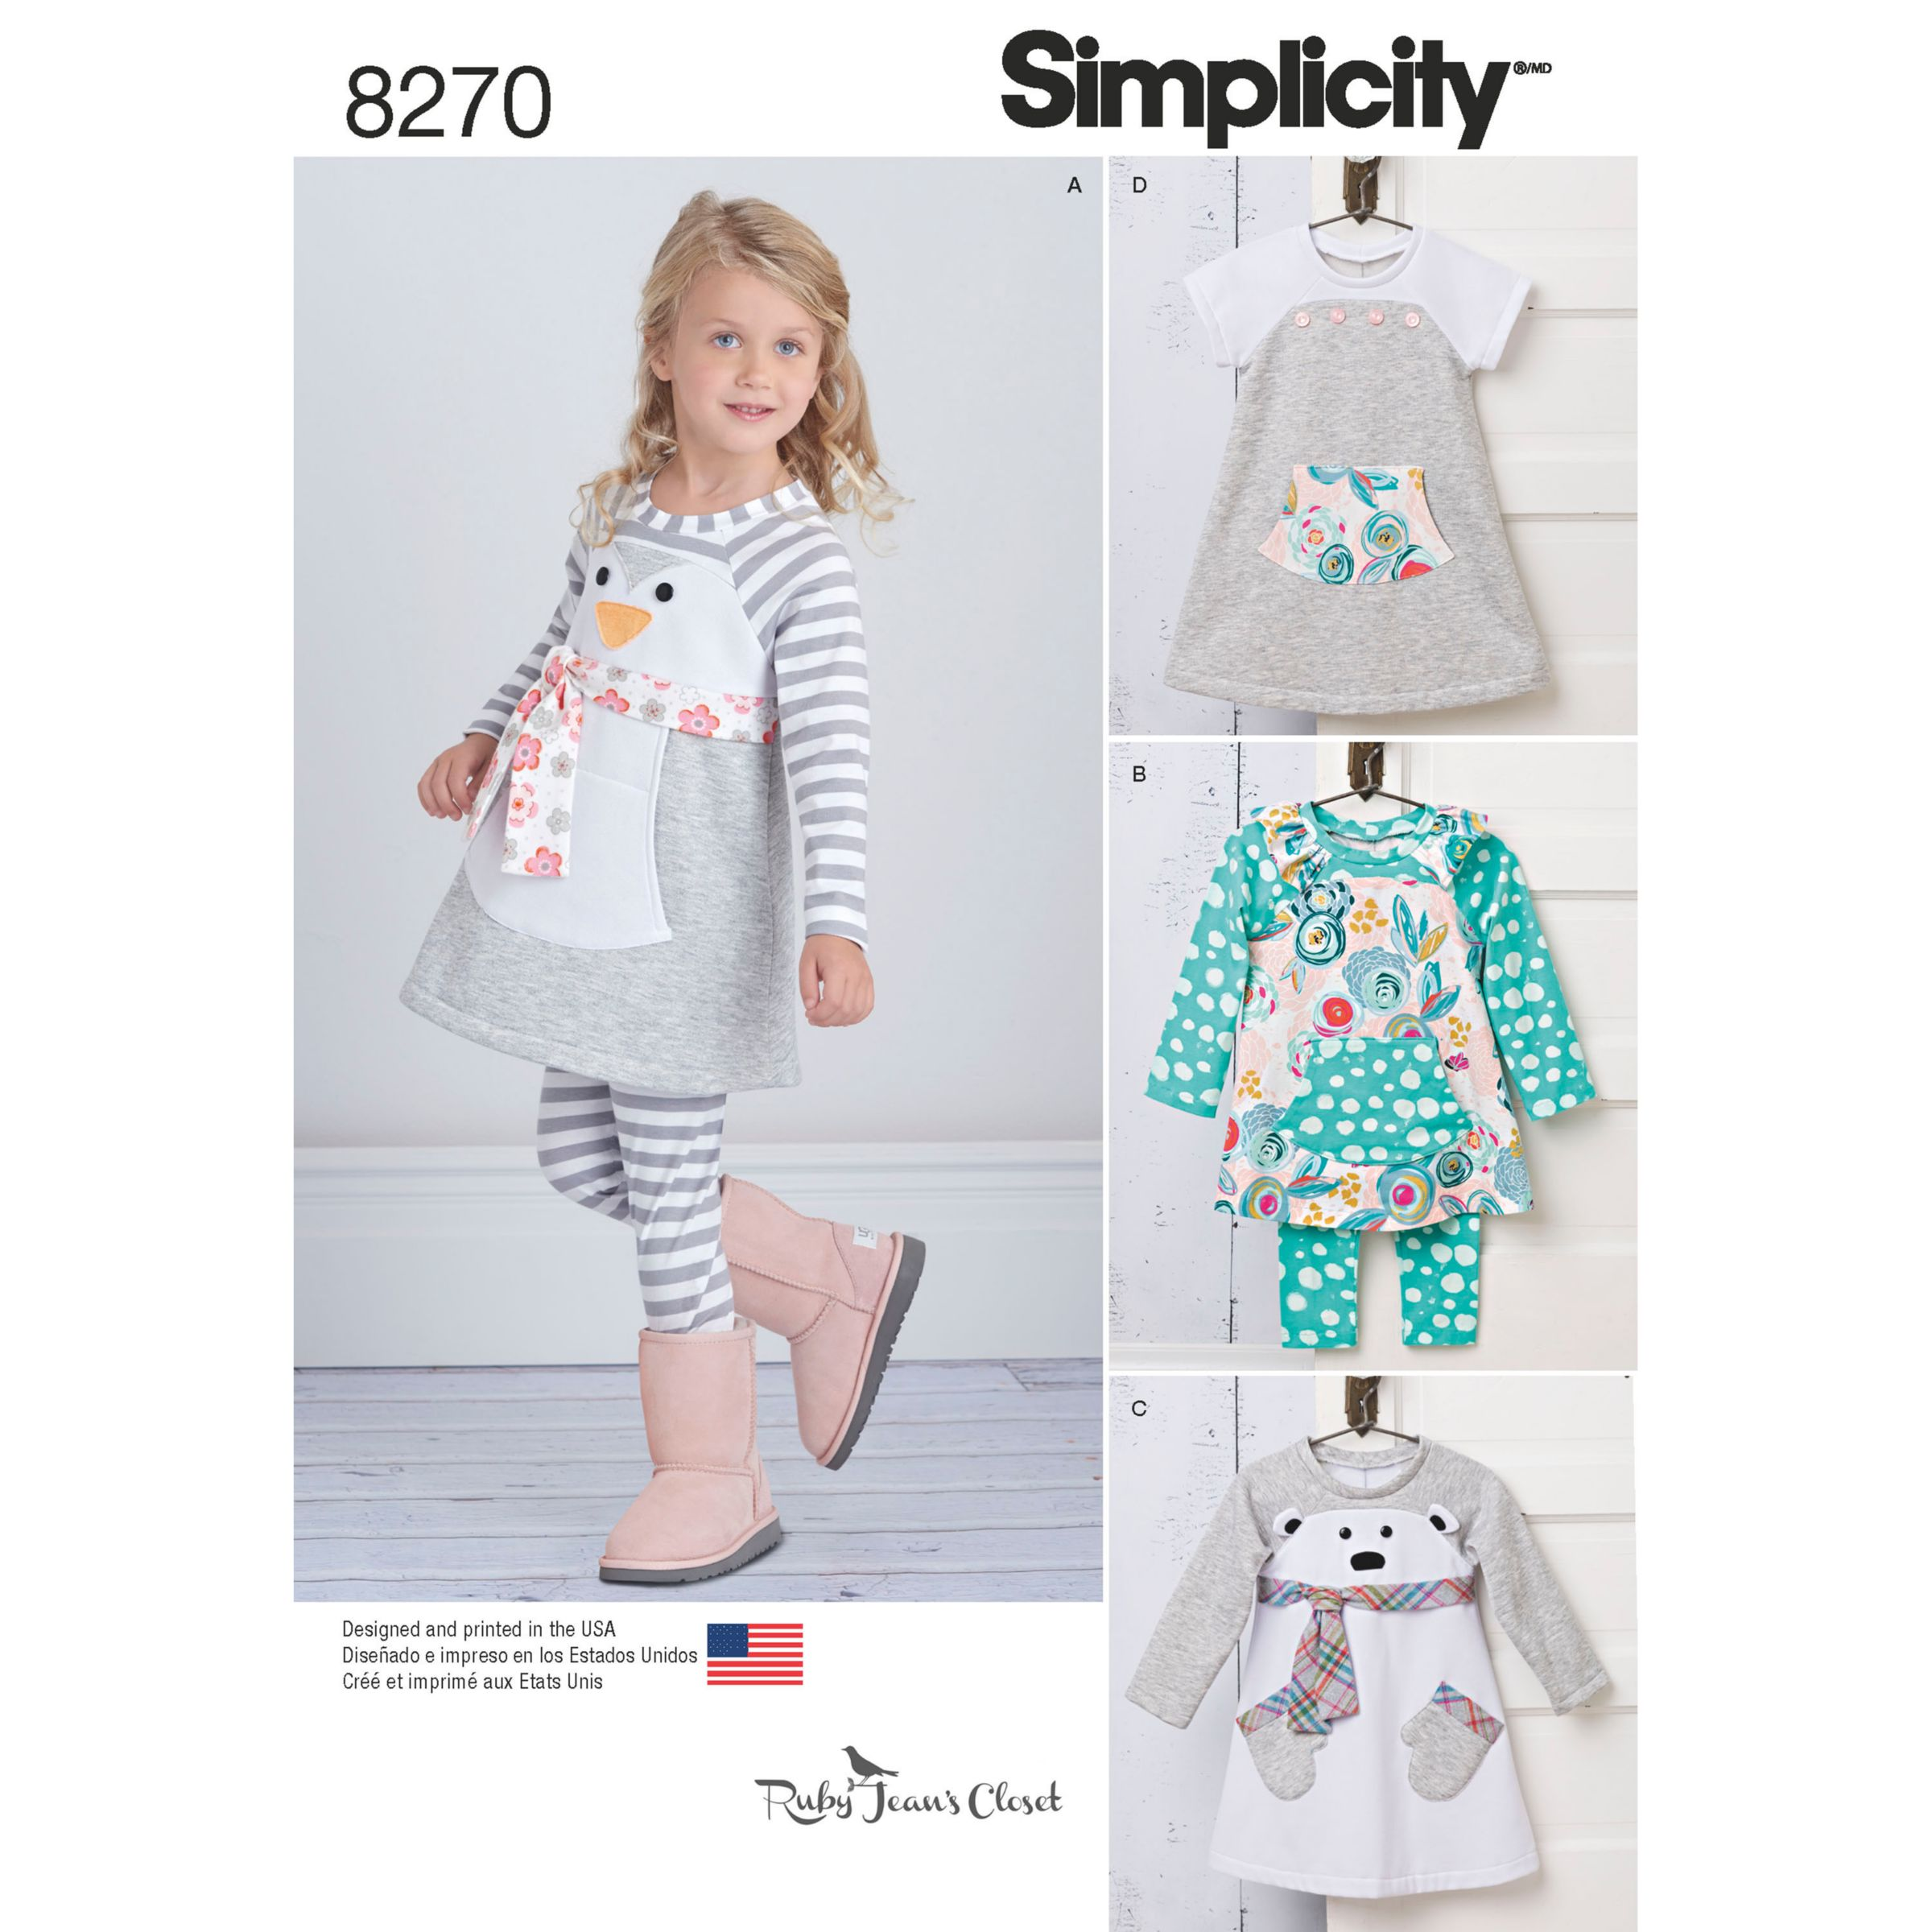 Simplicity Simplicity Children's Outfits from Ruby Jean's Closet Sewing Pattern, 8270, A